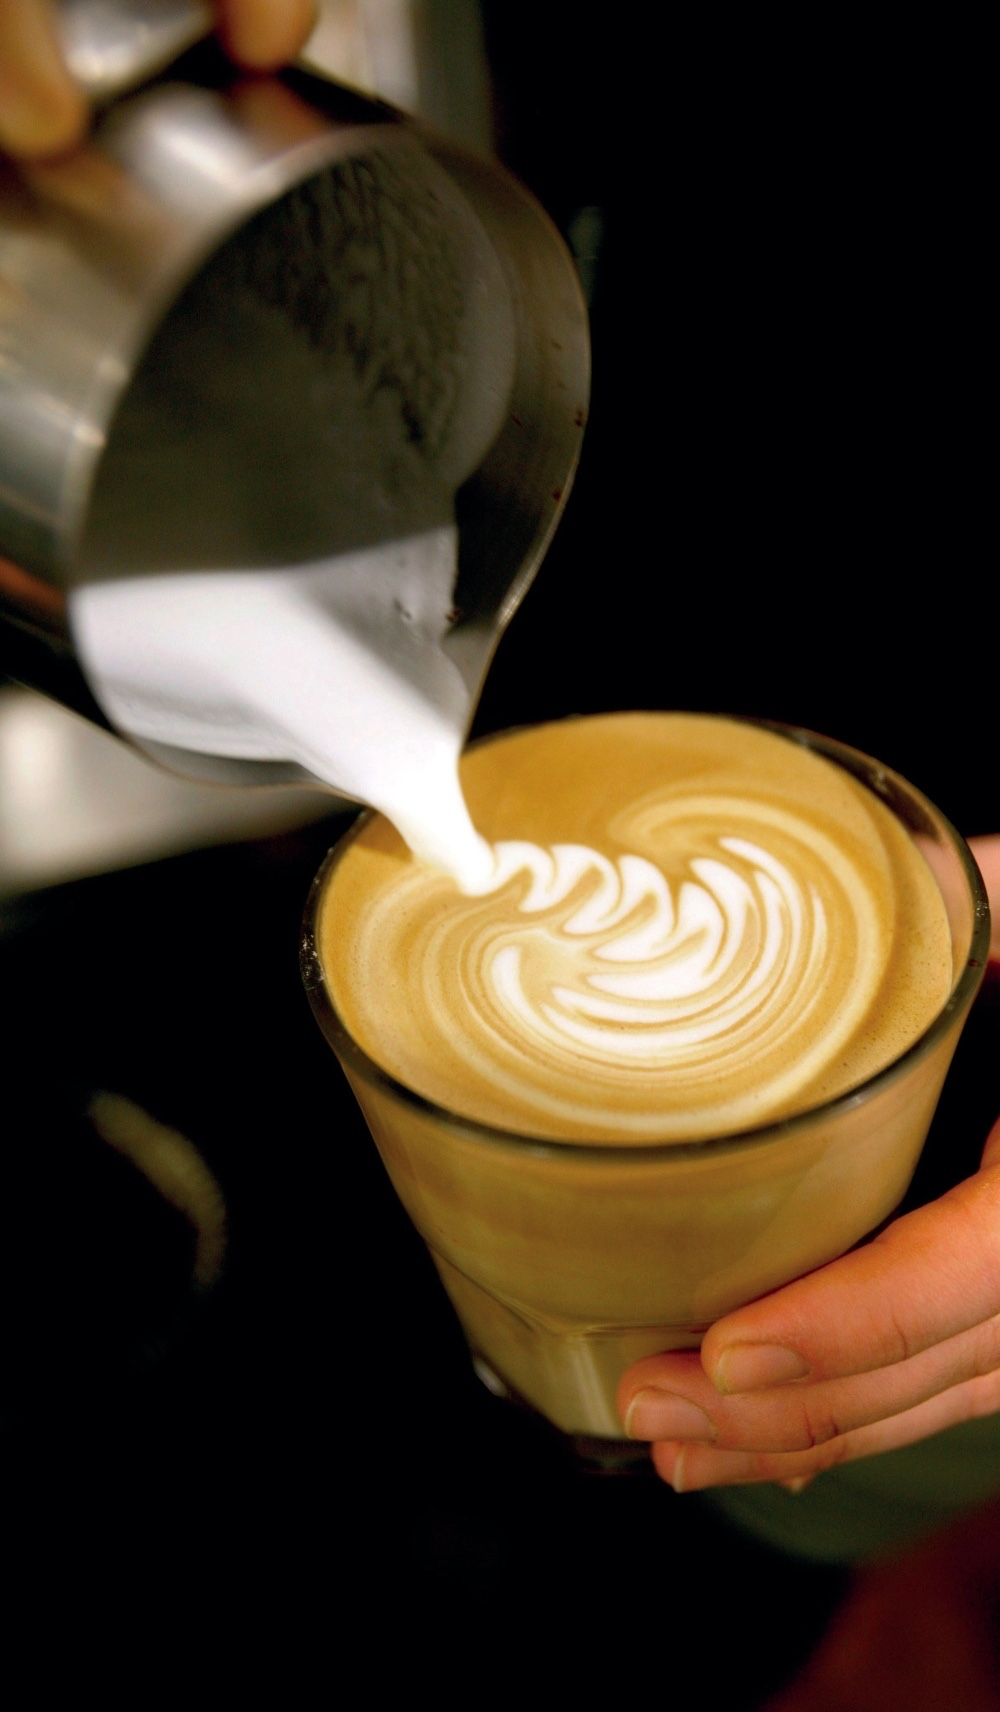 Originating in Australia and New Zealand, the flat white is served with astrong shot of espresso in a small cup with textured milk. Image© 2016 Time Out England Limited.